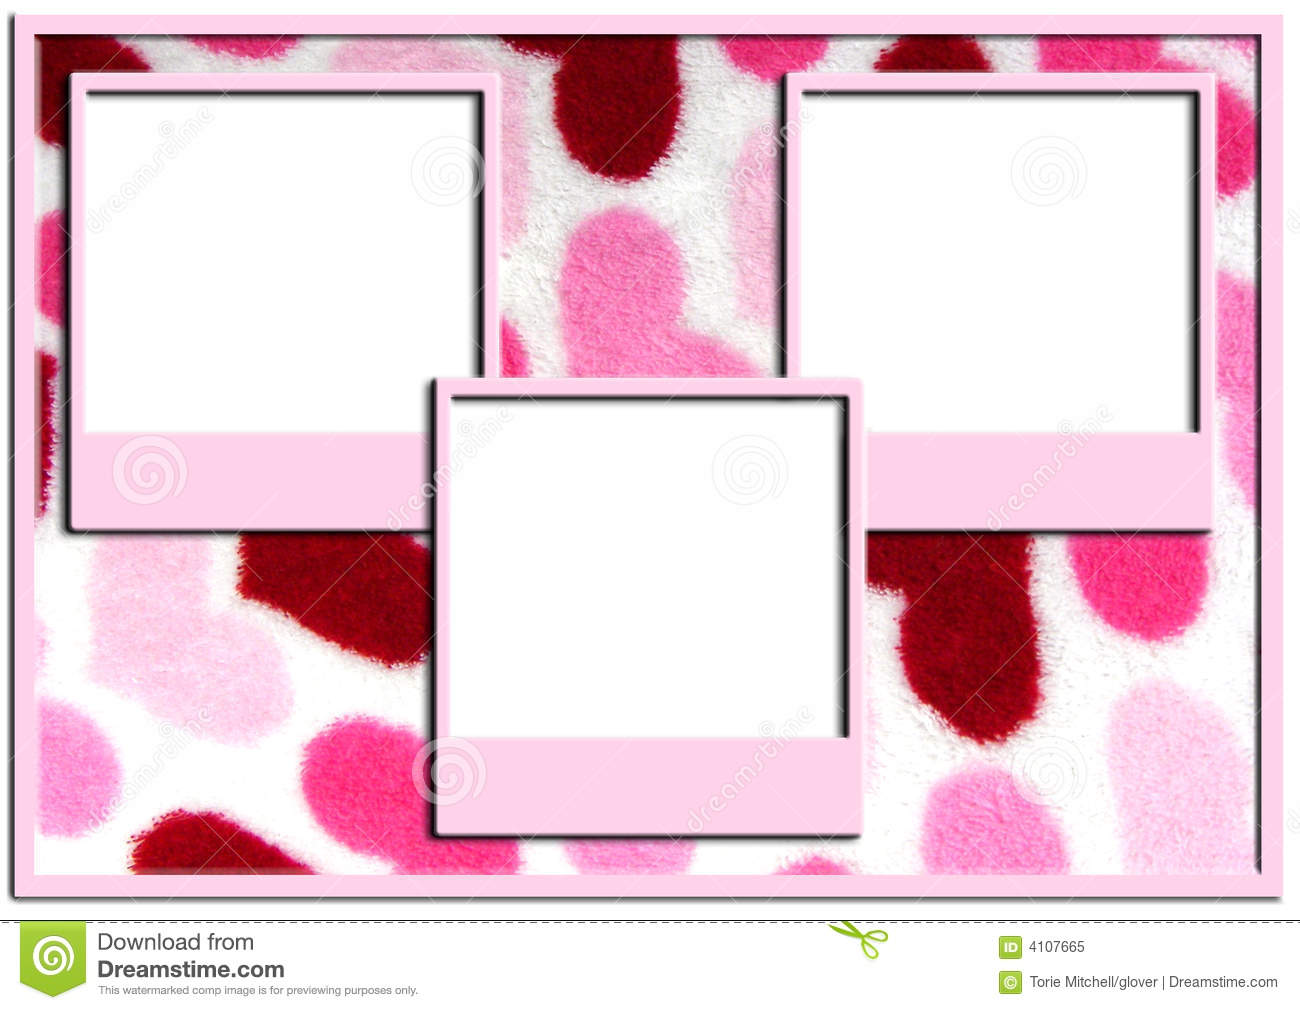 Triple Picture Frames On Heart Background Stock Image - Image of ...